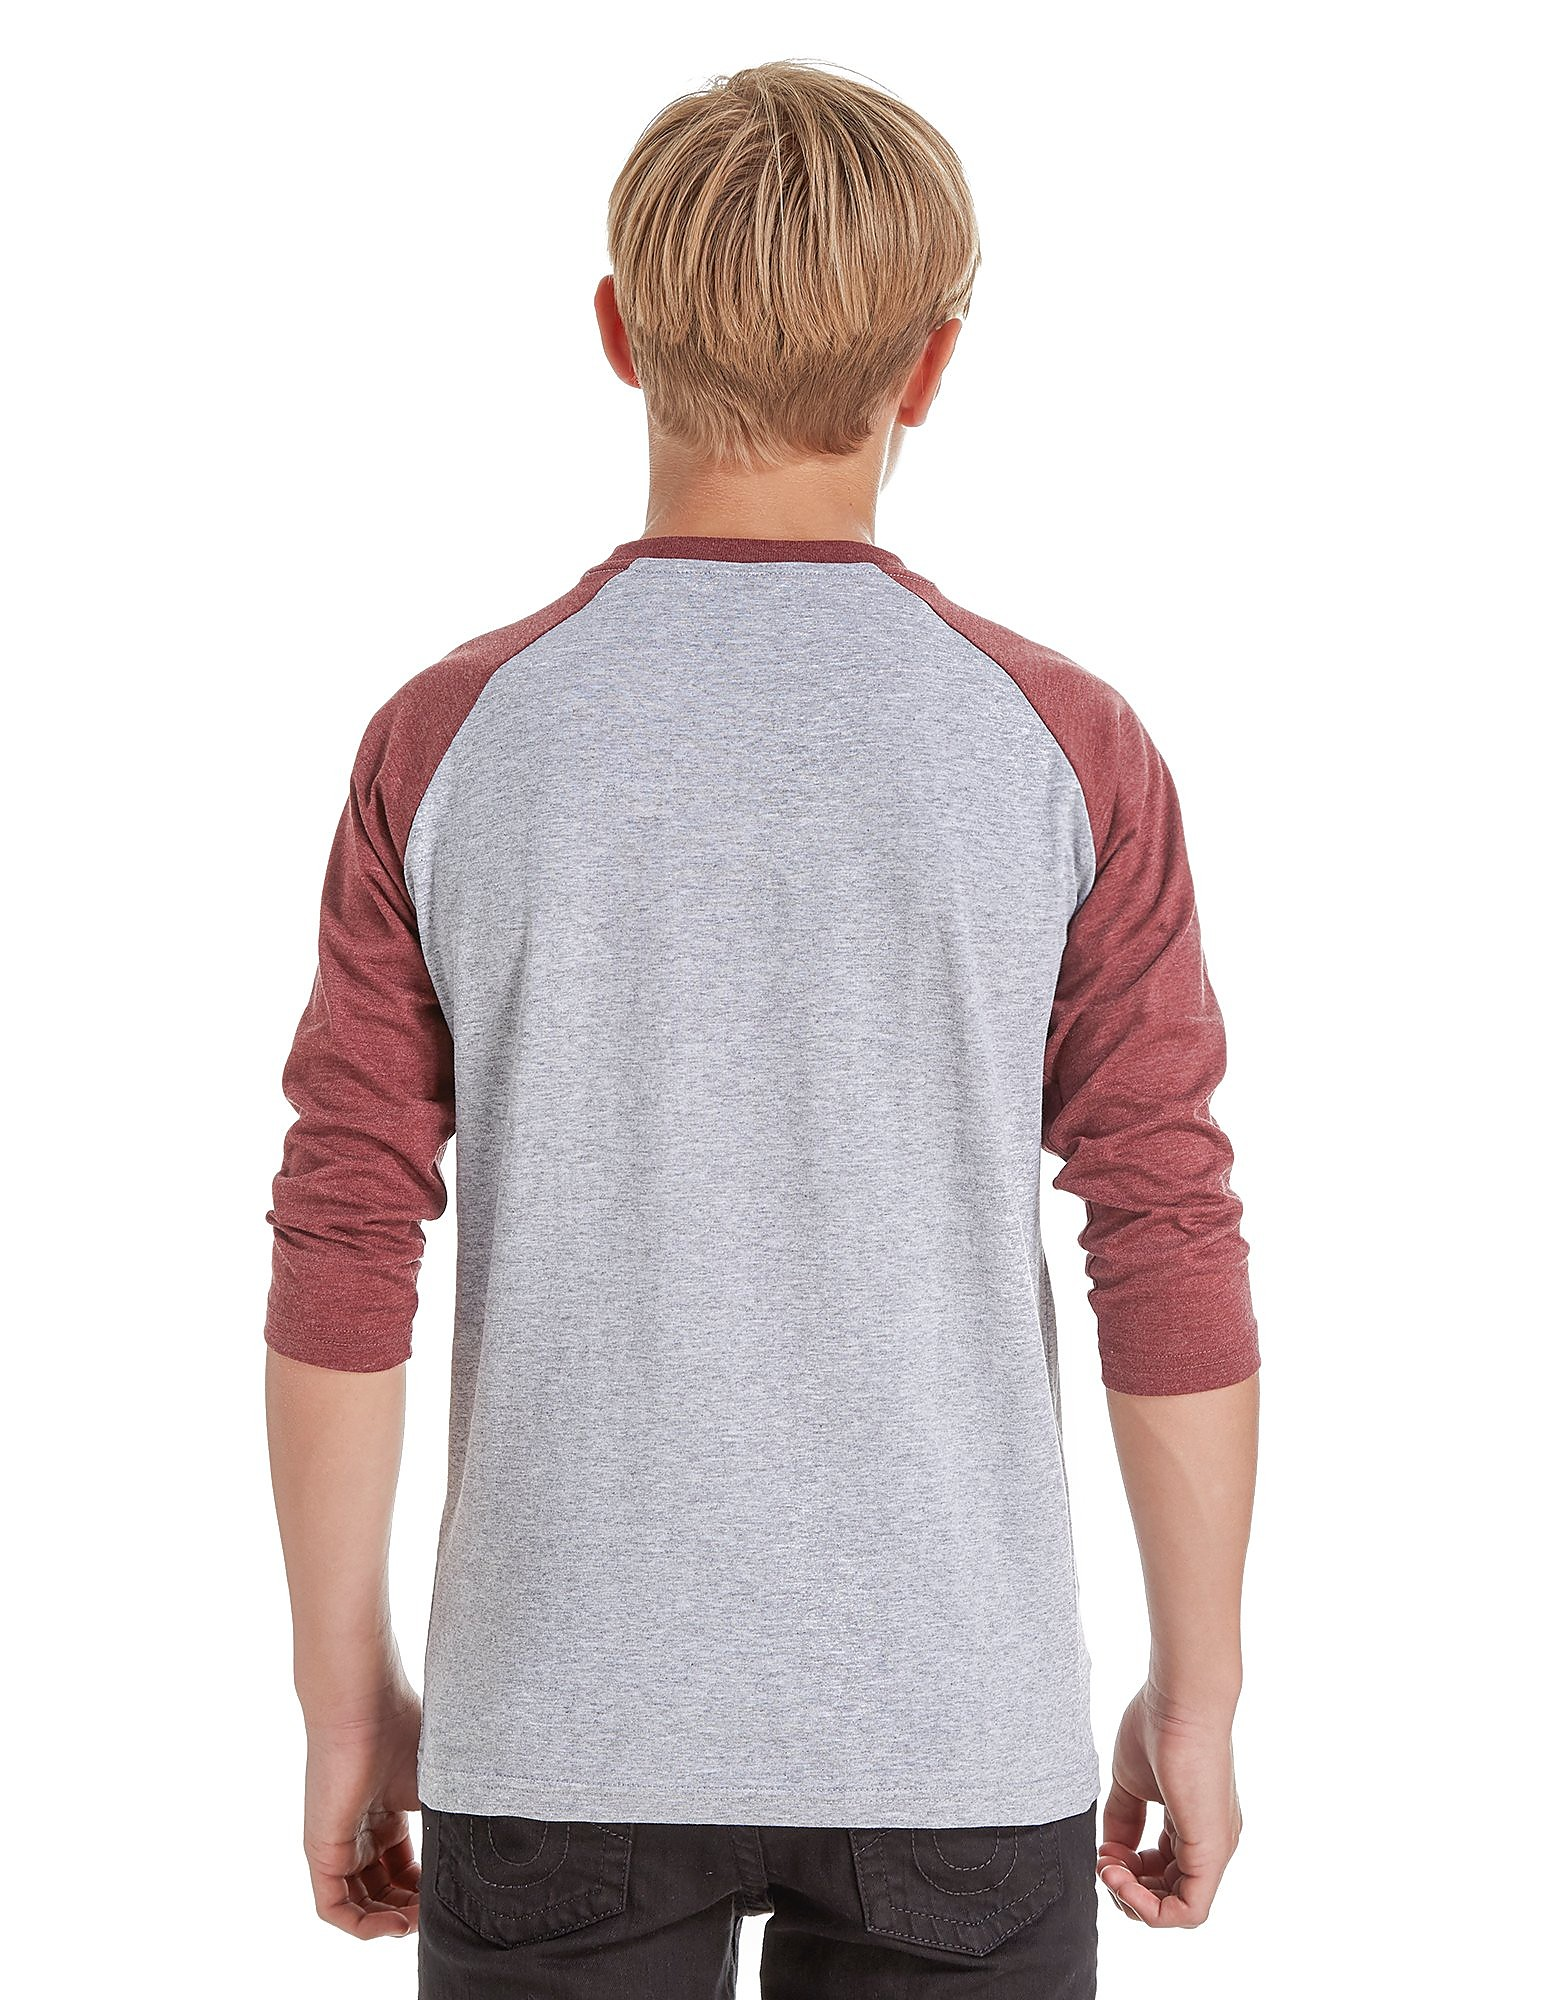 Vans Classic Raglan Sleeve T-Shirt Junior